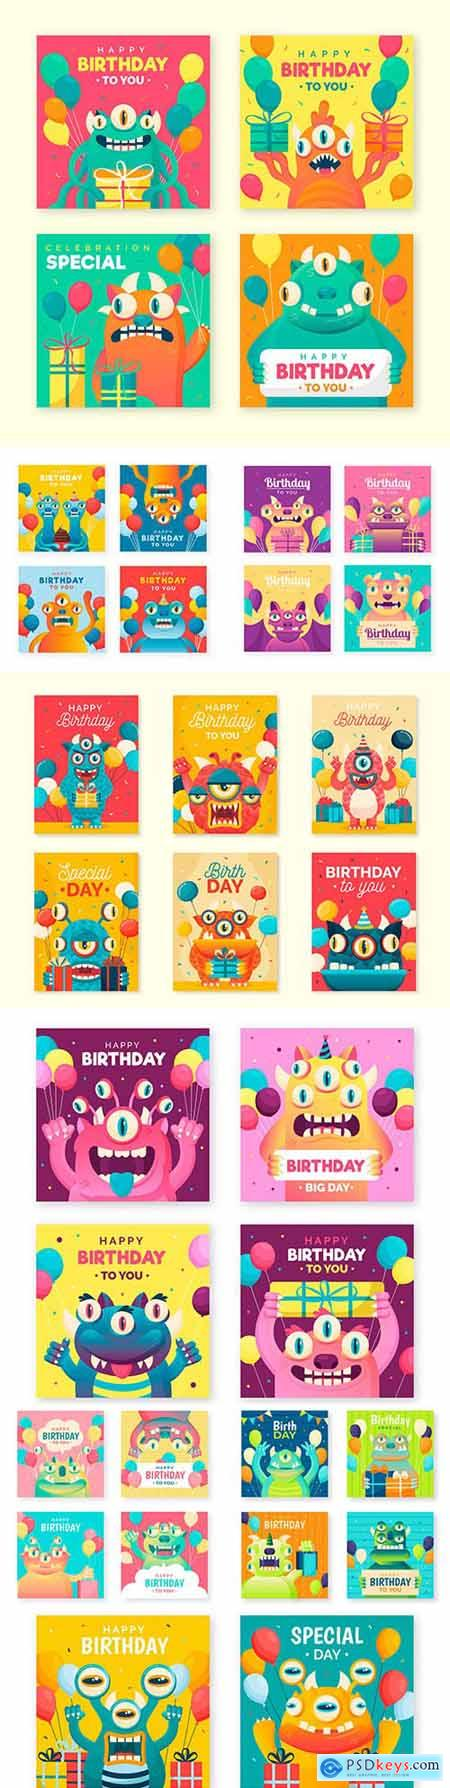 Birthday card for illustrations with funny monsters